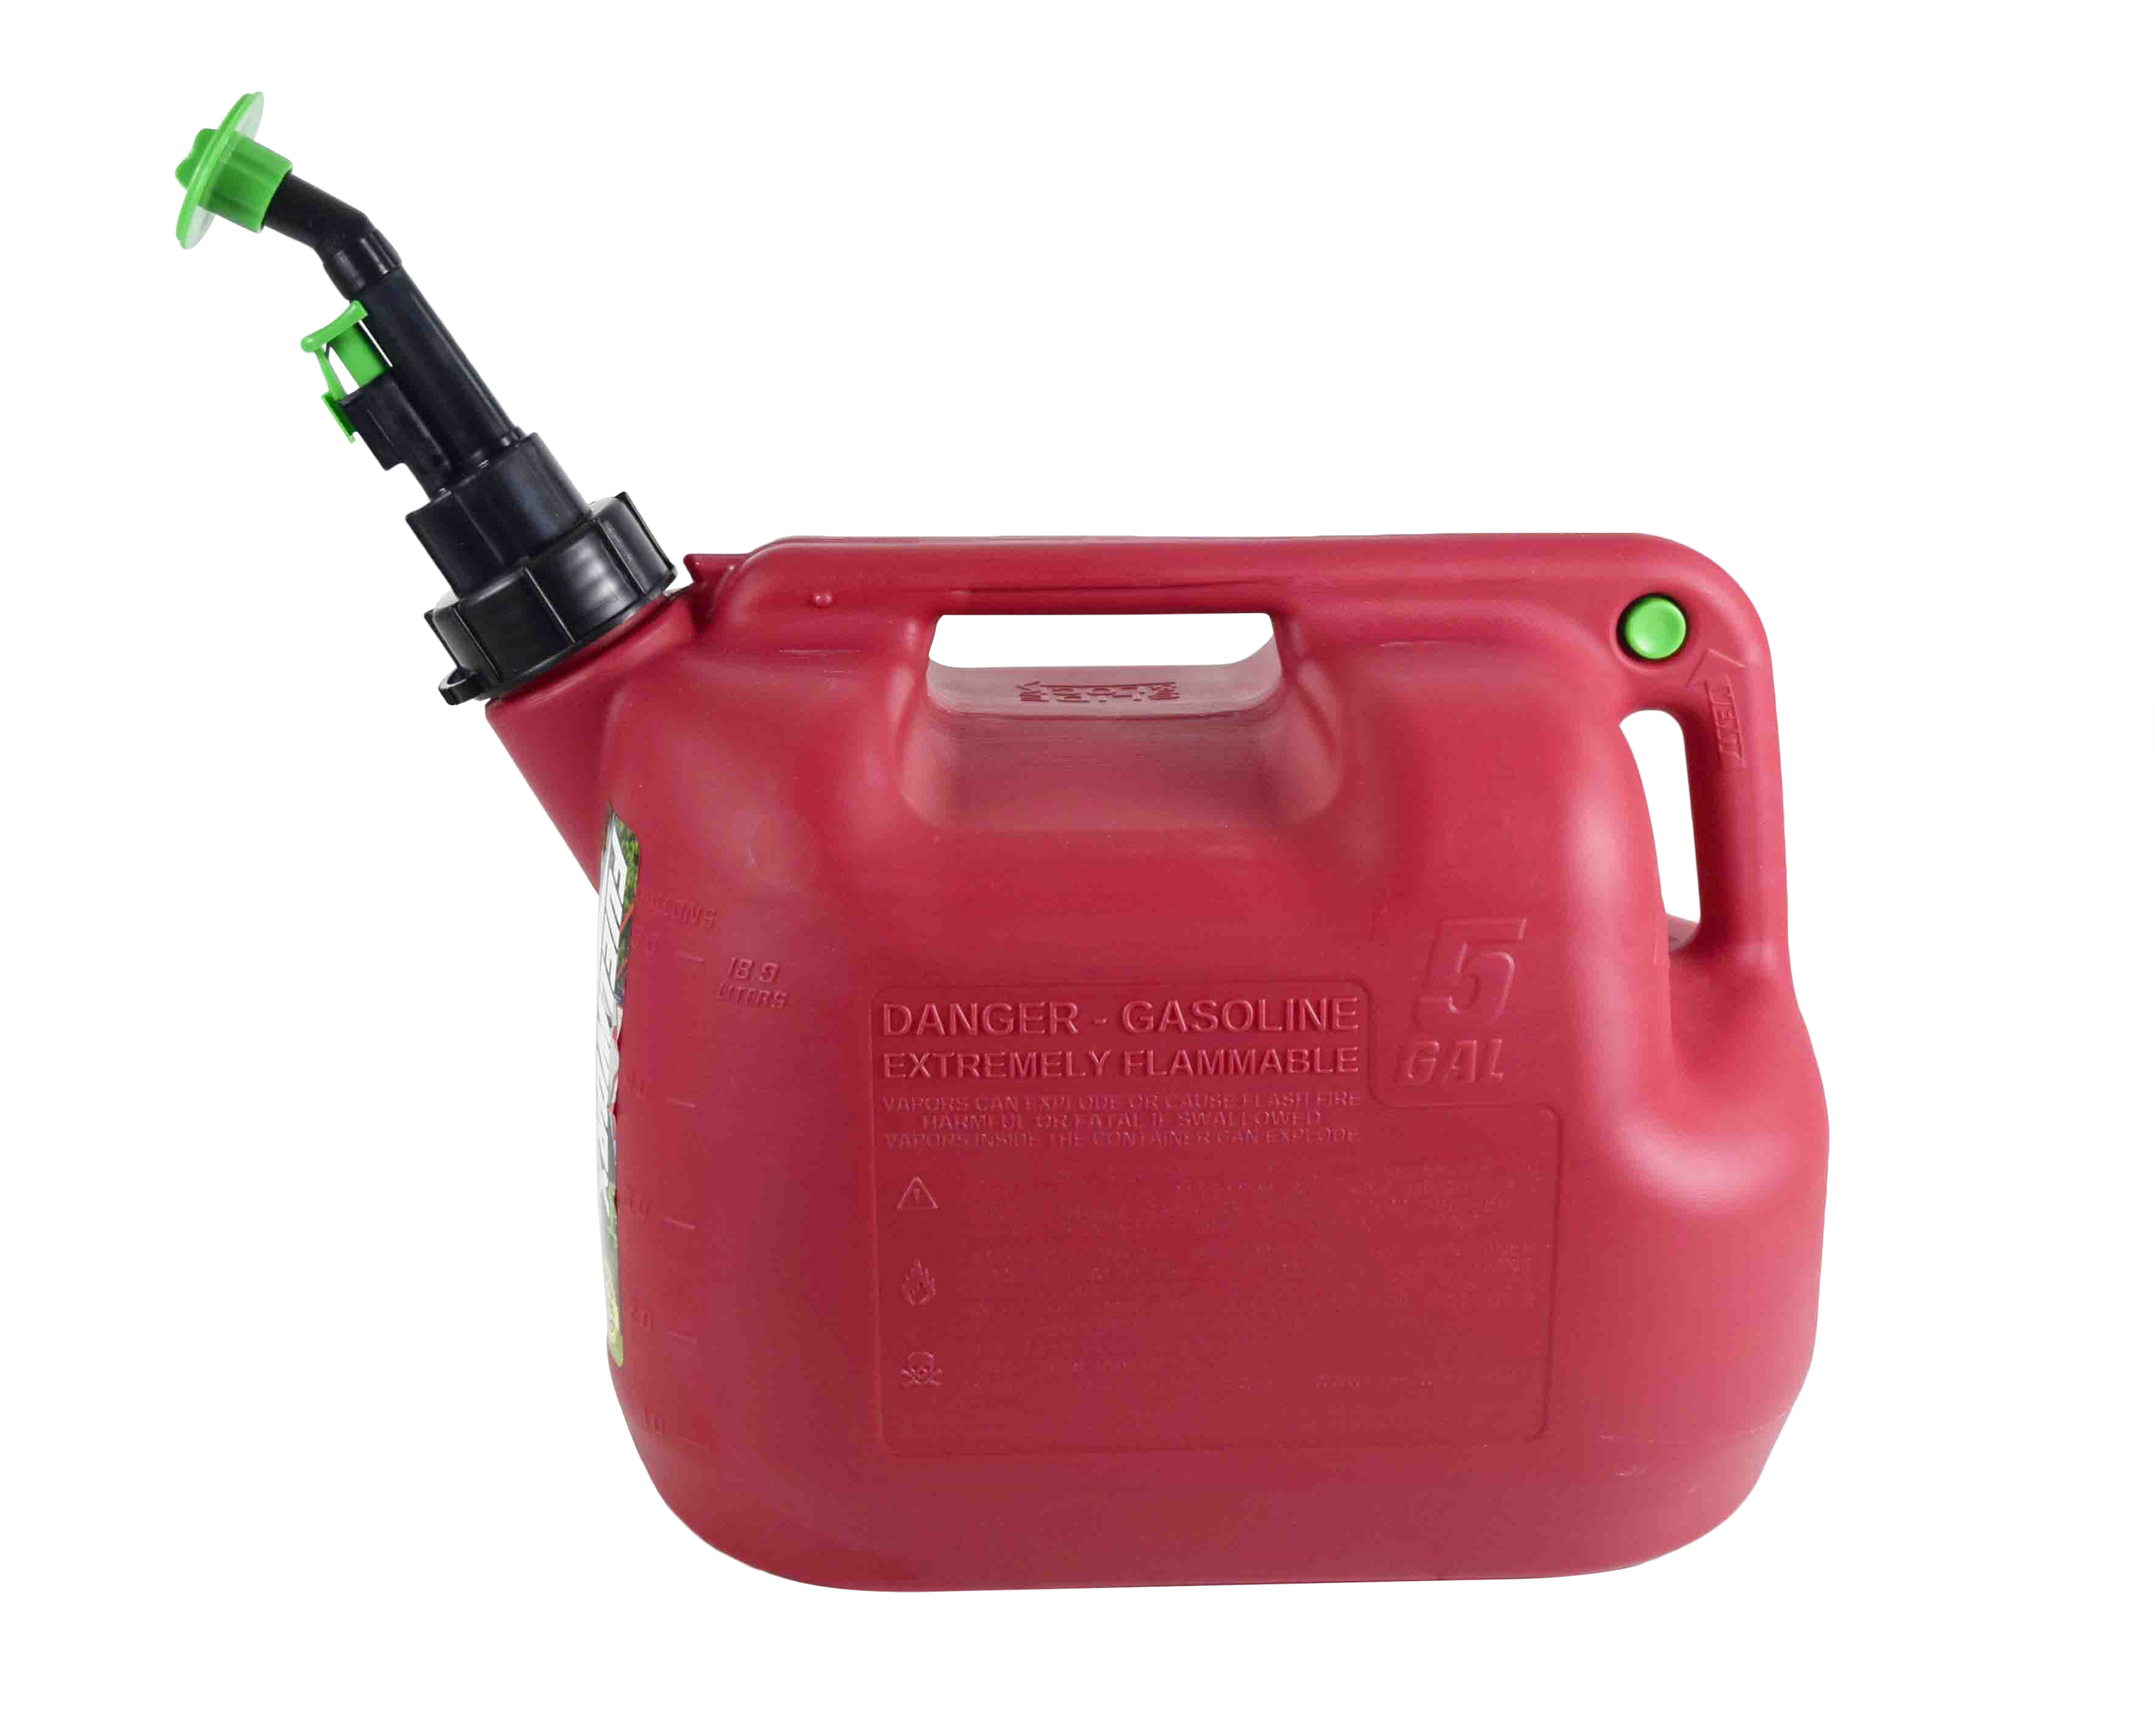 Fuelworx-Red-5-Gallon-Stackable-Fast-Pour-Gas-Fuel-Can-CARB-Compliant-Made-in-The-USA-5-Gallon-Gas-Can-3-Pack-image-2